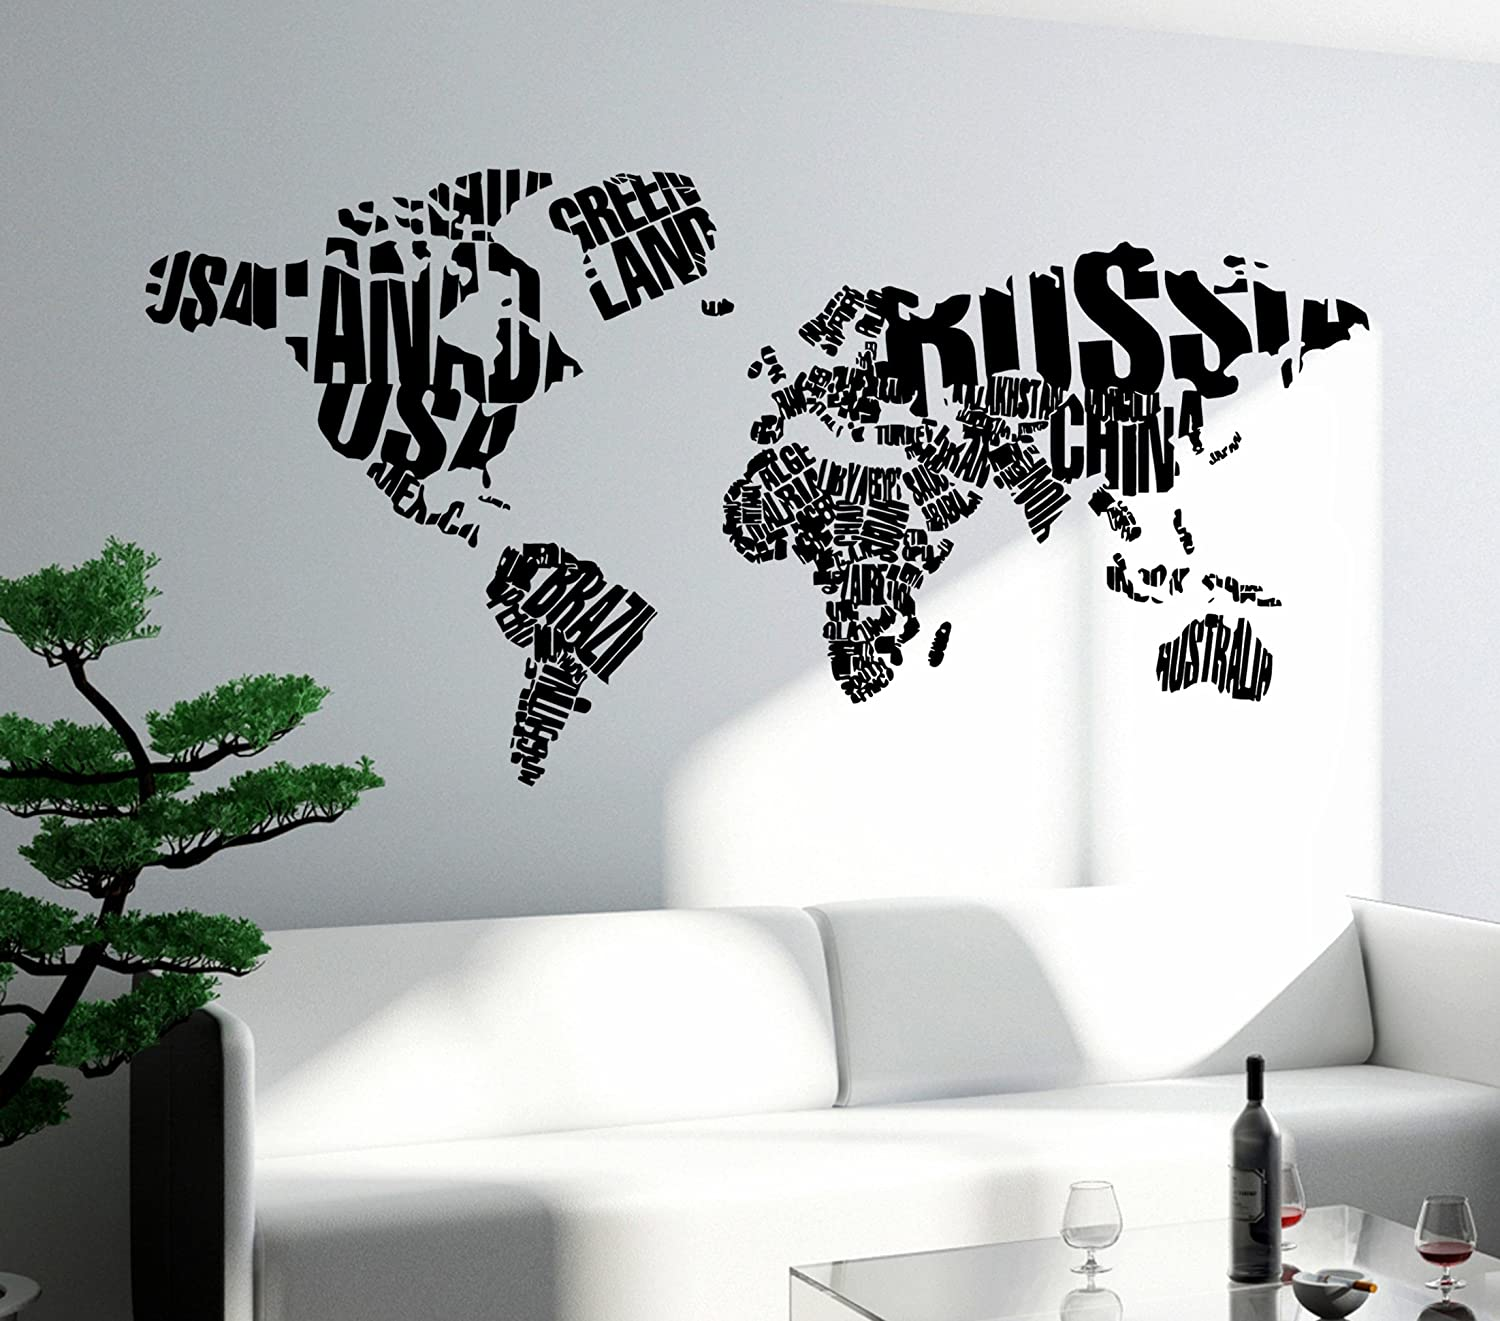 Amazon wall stickers vinyl decal world map with country names amazon wall stickers vinyl decal world map with country names usa russia china brazil z1310i 17 in by 35 in home kitchen gumiabroncs Images